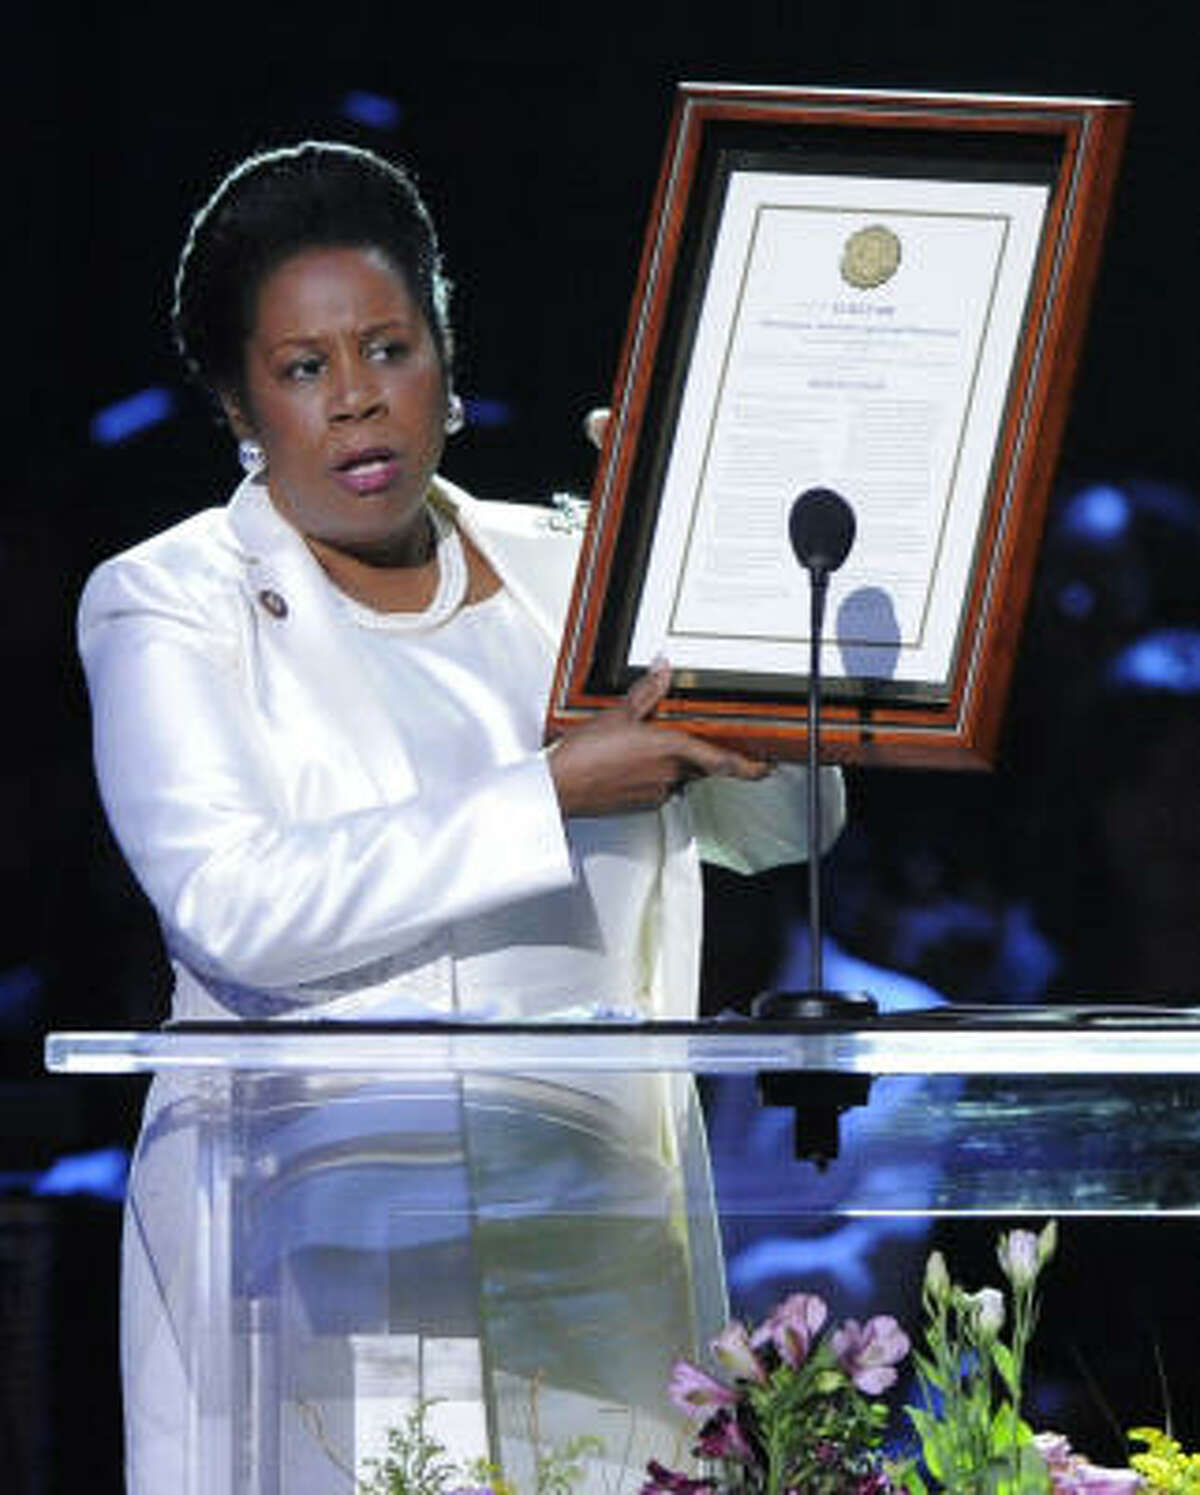 Houston Democrat Sheila Jackson Lee, shown at Michael Jackson's memorial service, where she presented a House resolution that was to honor the singer, says she was invited to the event by Jackson's brother Jermaine.